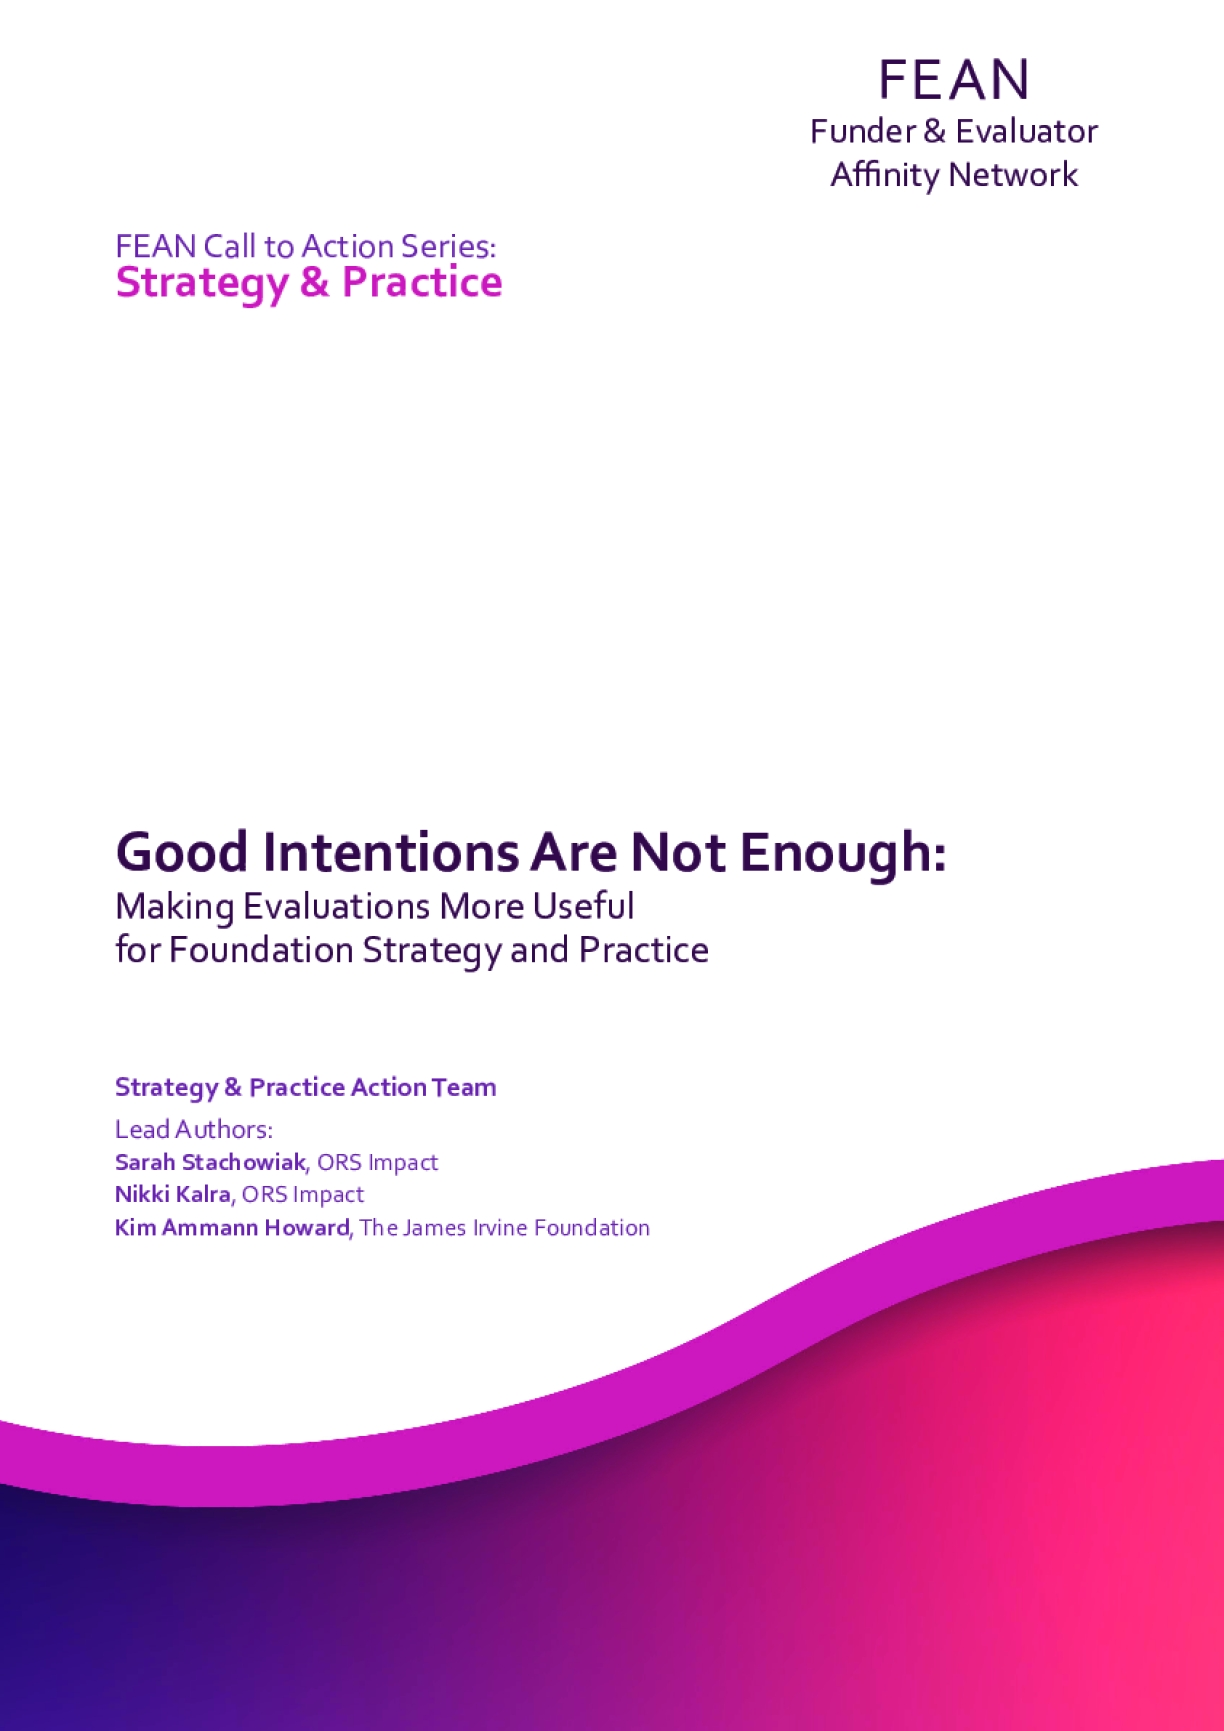 Good Intentions Are Not Enough: Making Evaluations More Useful for Foundation Strategy and Practice